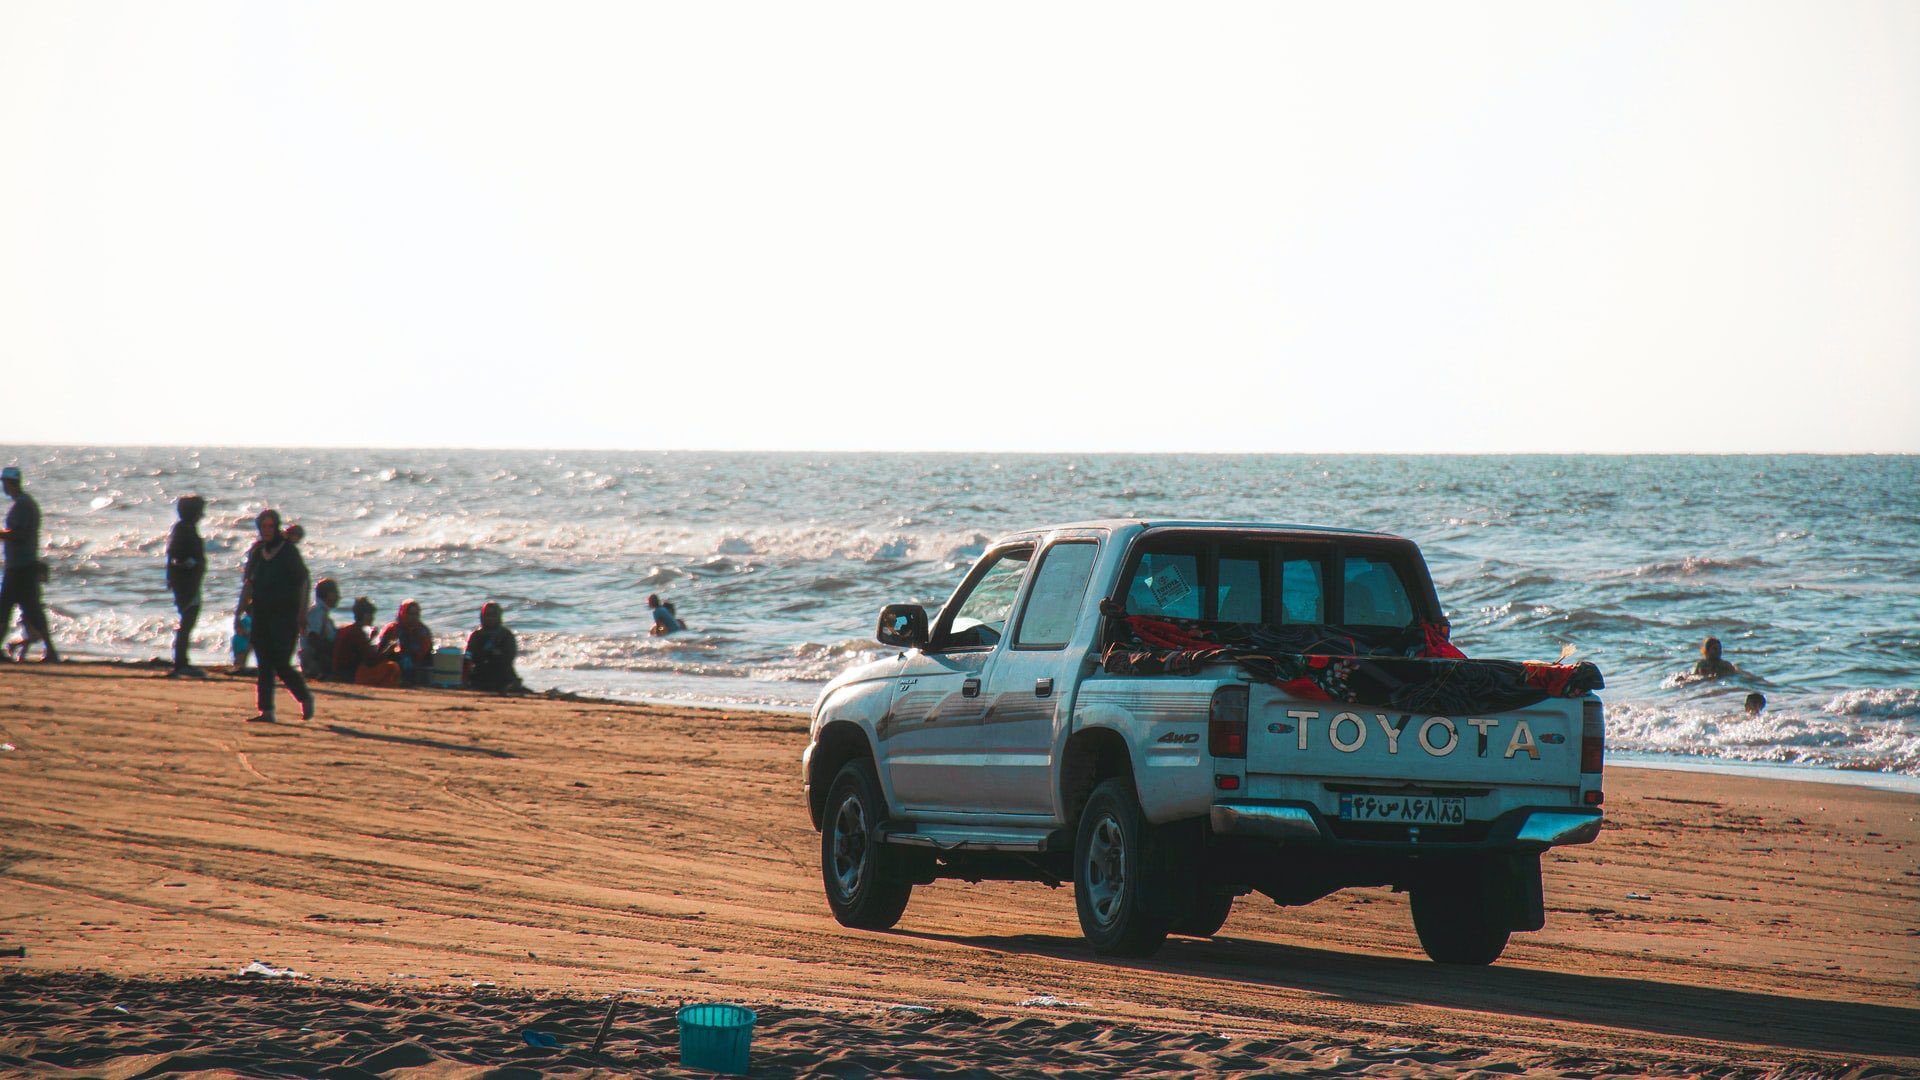 Toyota Hilux on a beach, driving with Toyota car insurance.